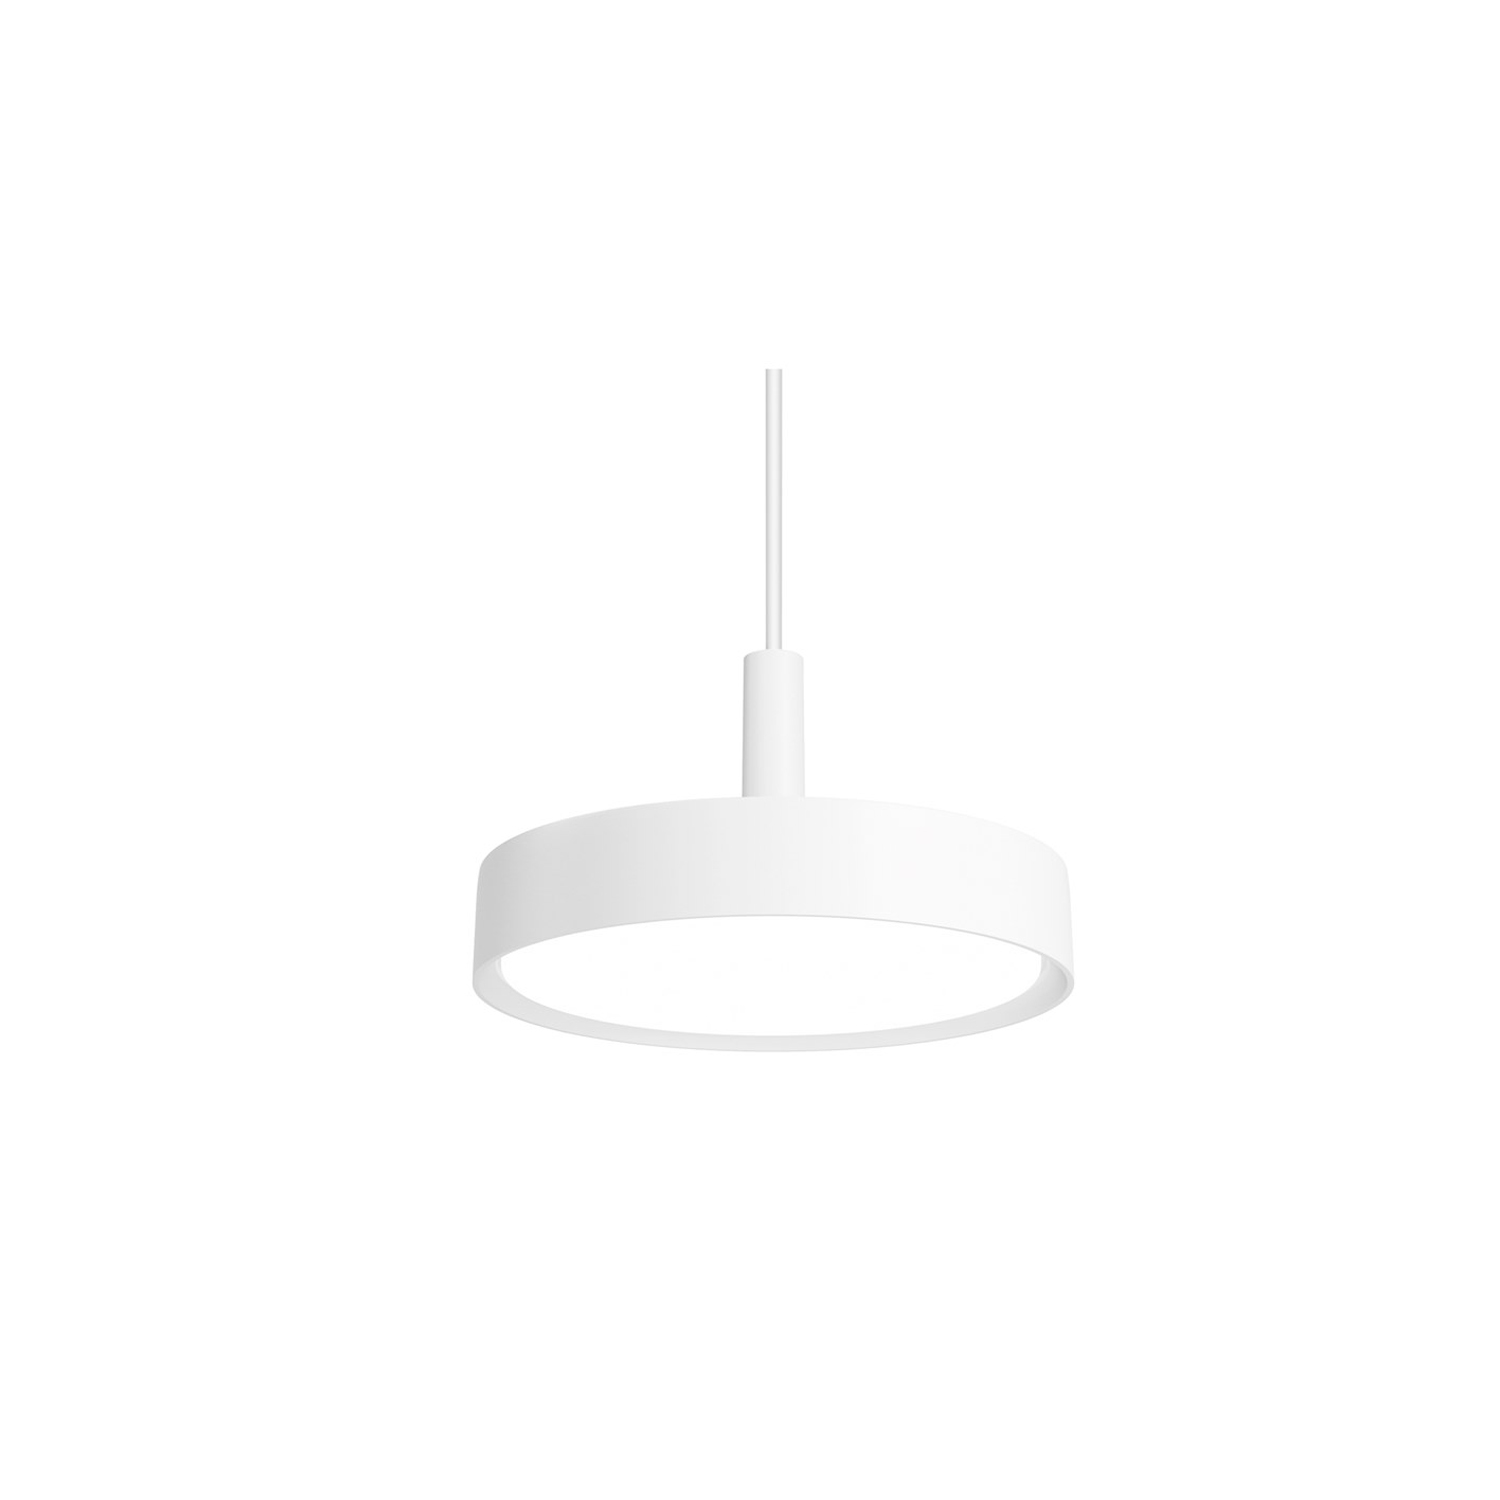 LP Slim Round Pendant Light - The slim housing encircles and high-efficient acrylic diffuser emitting diffused primarily downward directed light. The slim body has a slight curvature and an inner curve which reduces contrast. The product family comes in a range of sizes and mounting options for a wide range of applications. Surface-mounted and suspended versions have an indirect light component. | Matter of Stuff